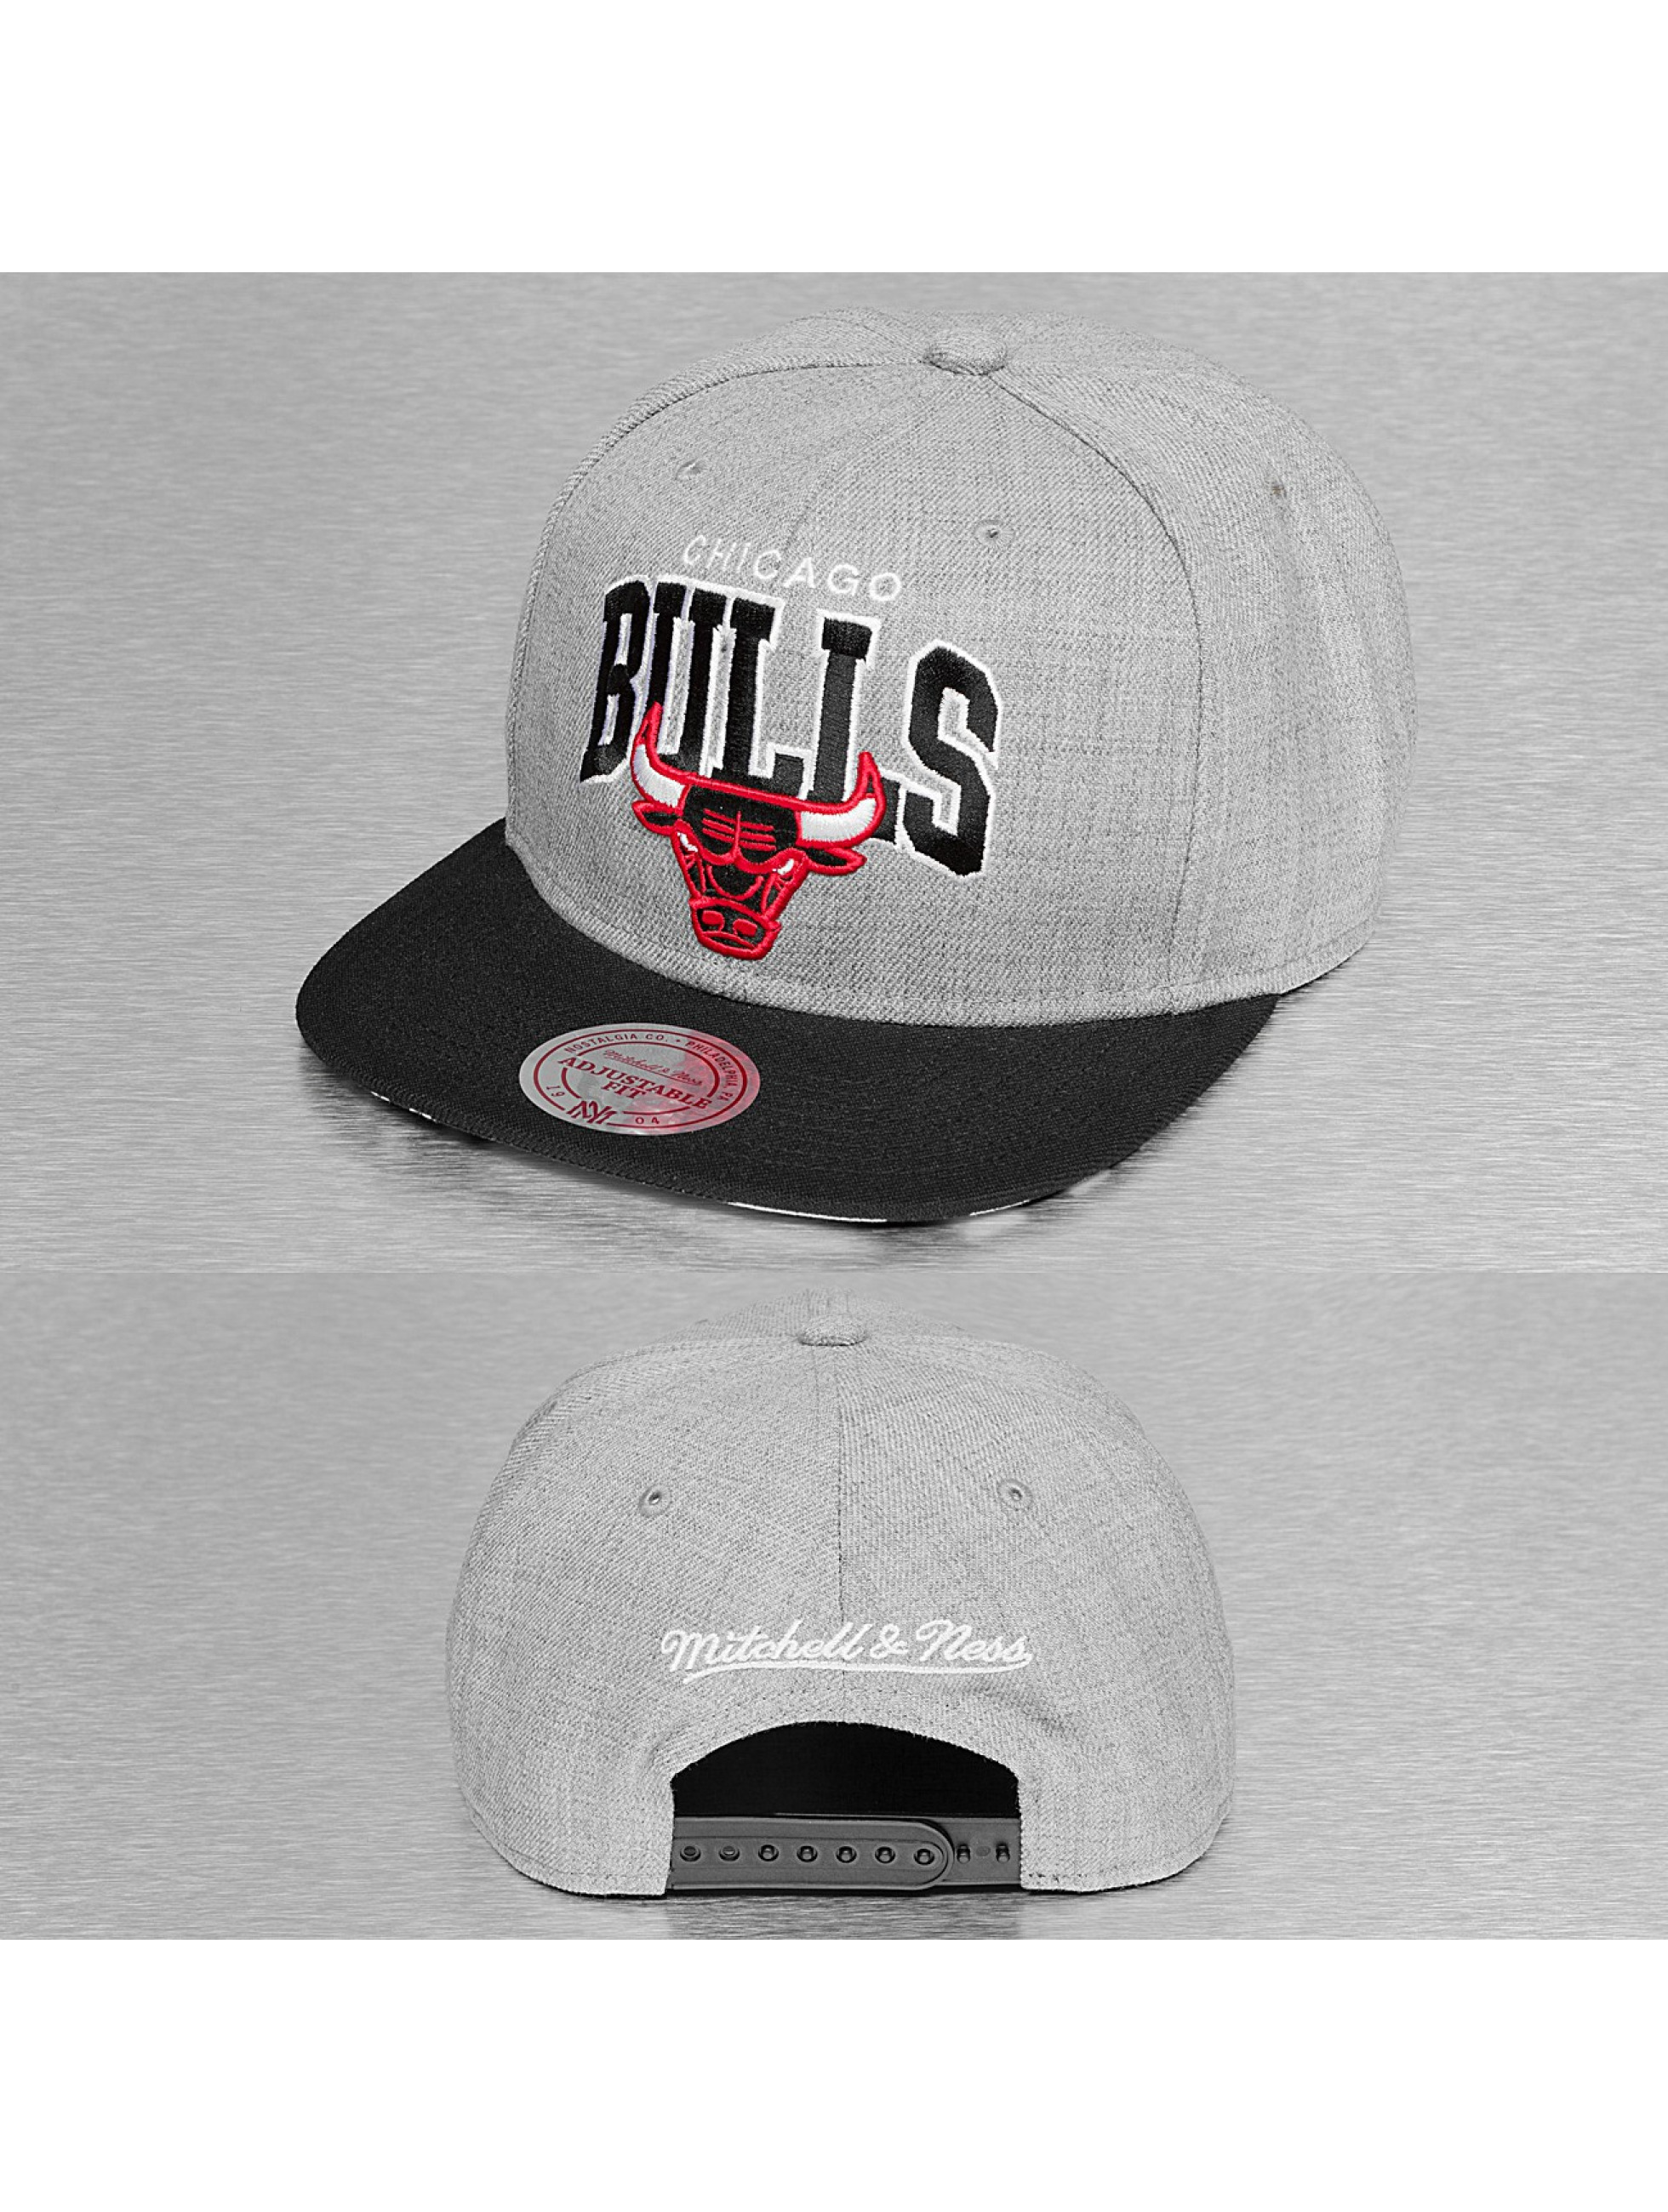 Mitchell & Ness snapback cap Black USA Chicago Bulls grijs